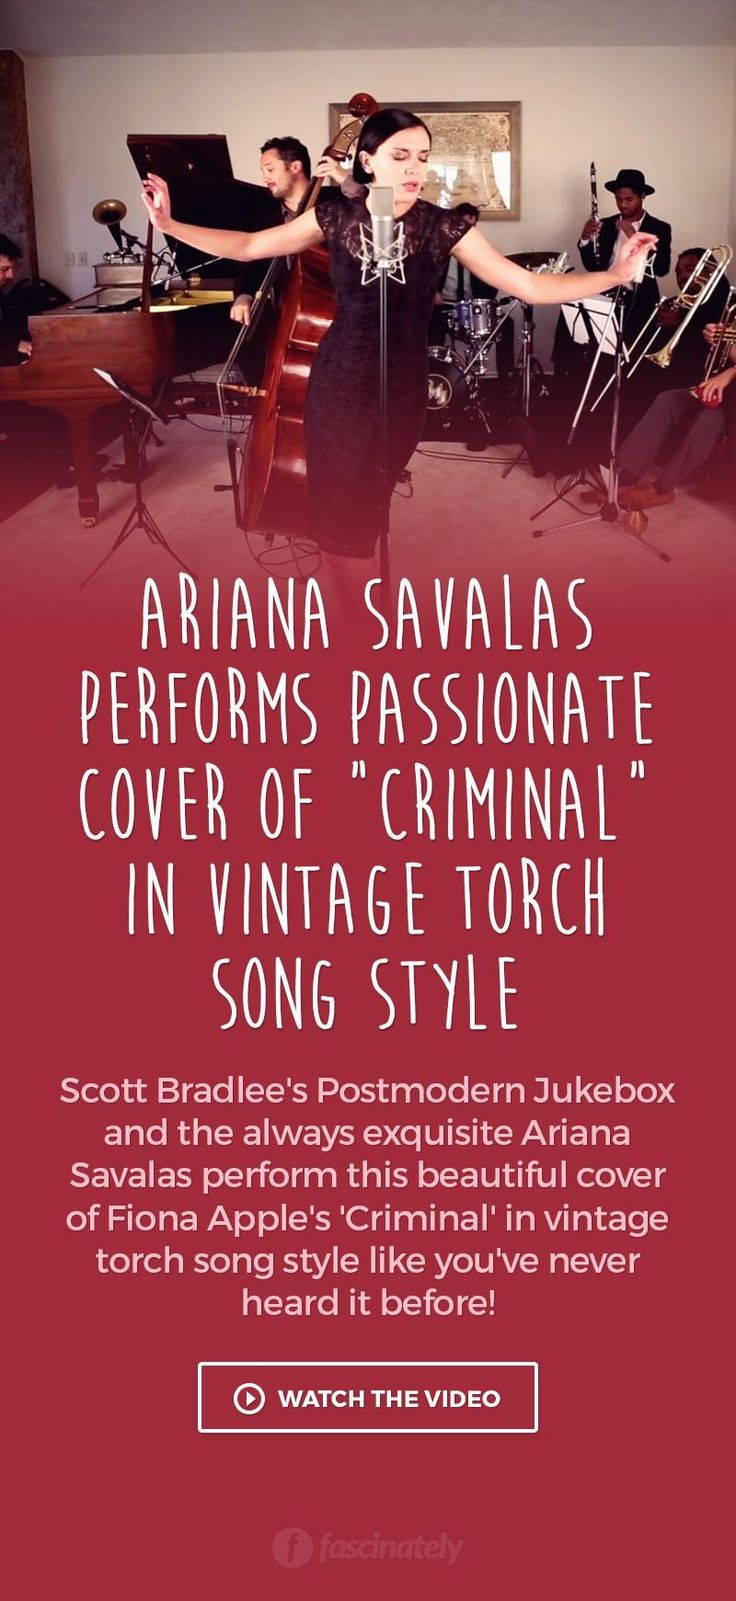 """Ariana Savalas Performs Passionate Cover of """"Criminal"""" in Vintage Torch Song Style"""